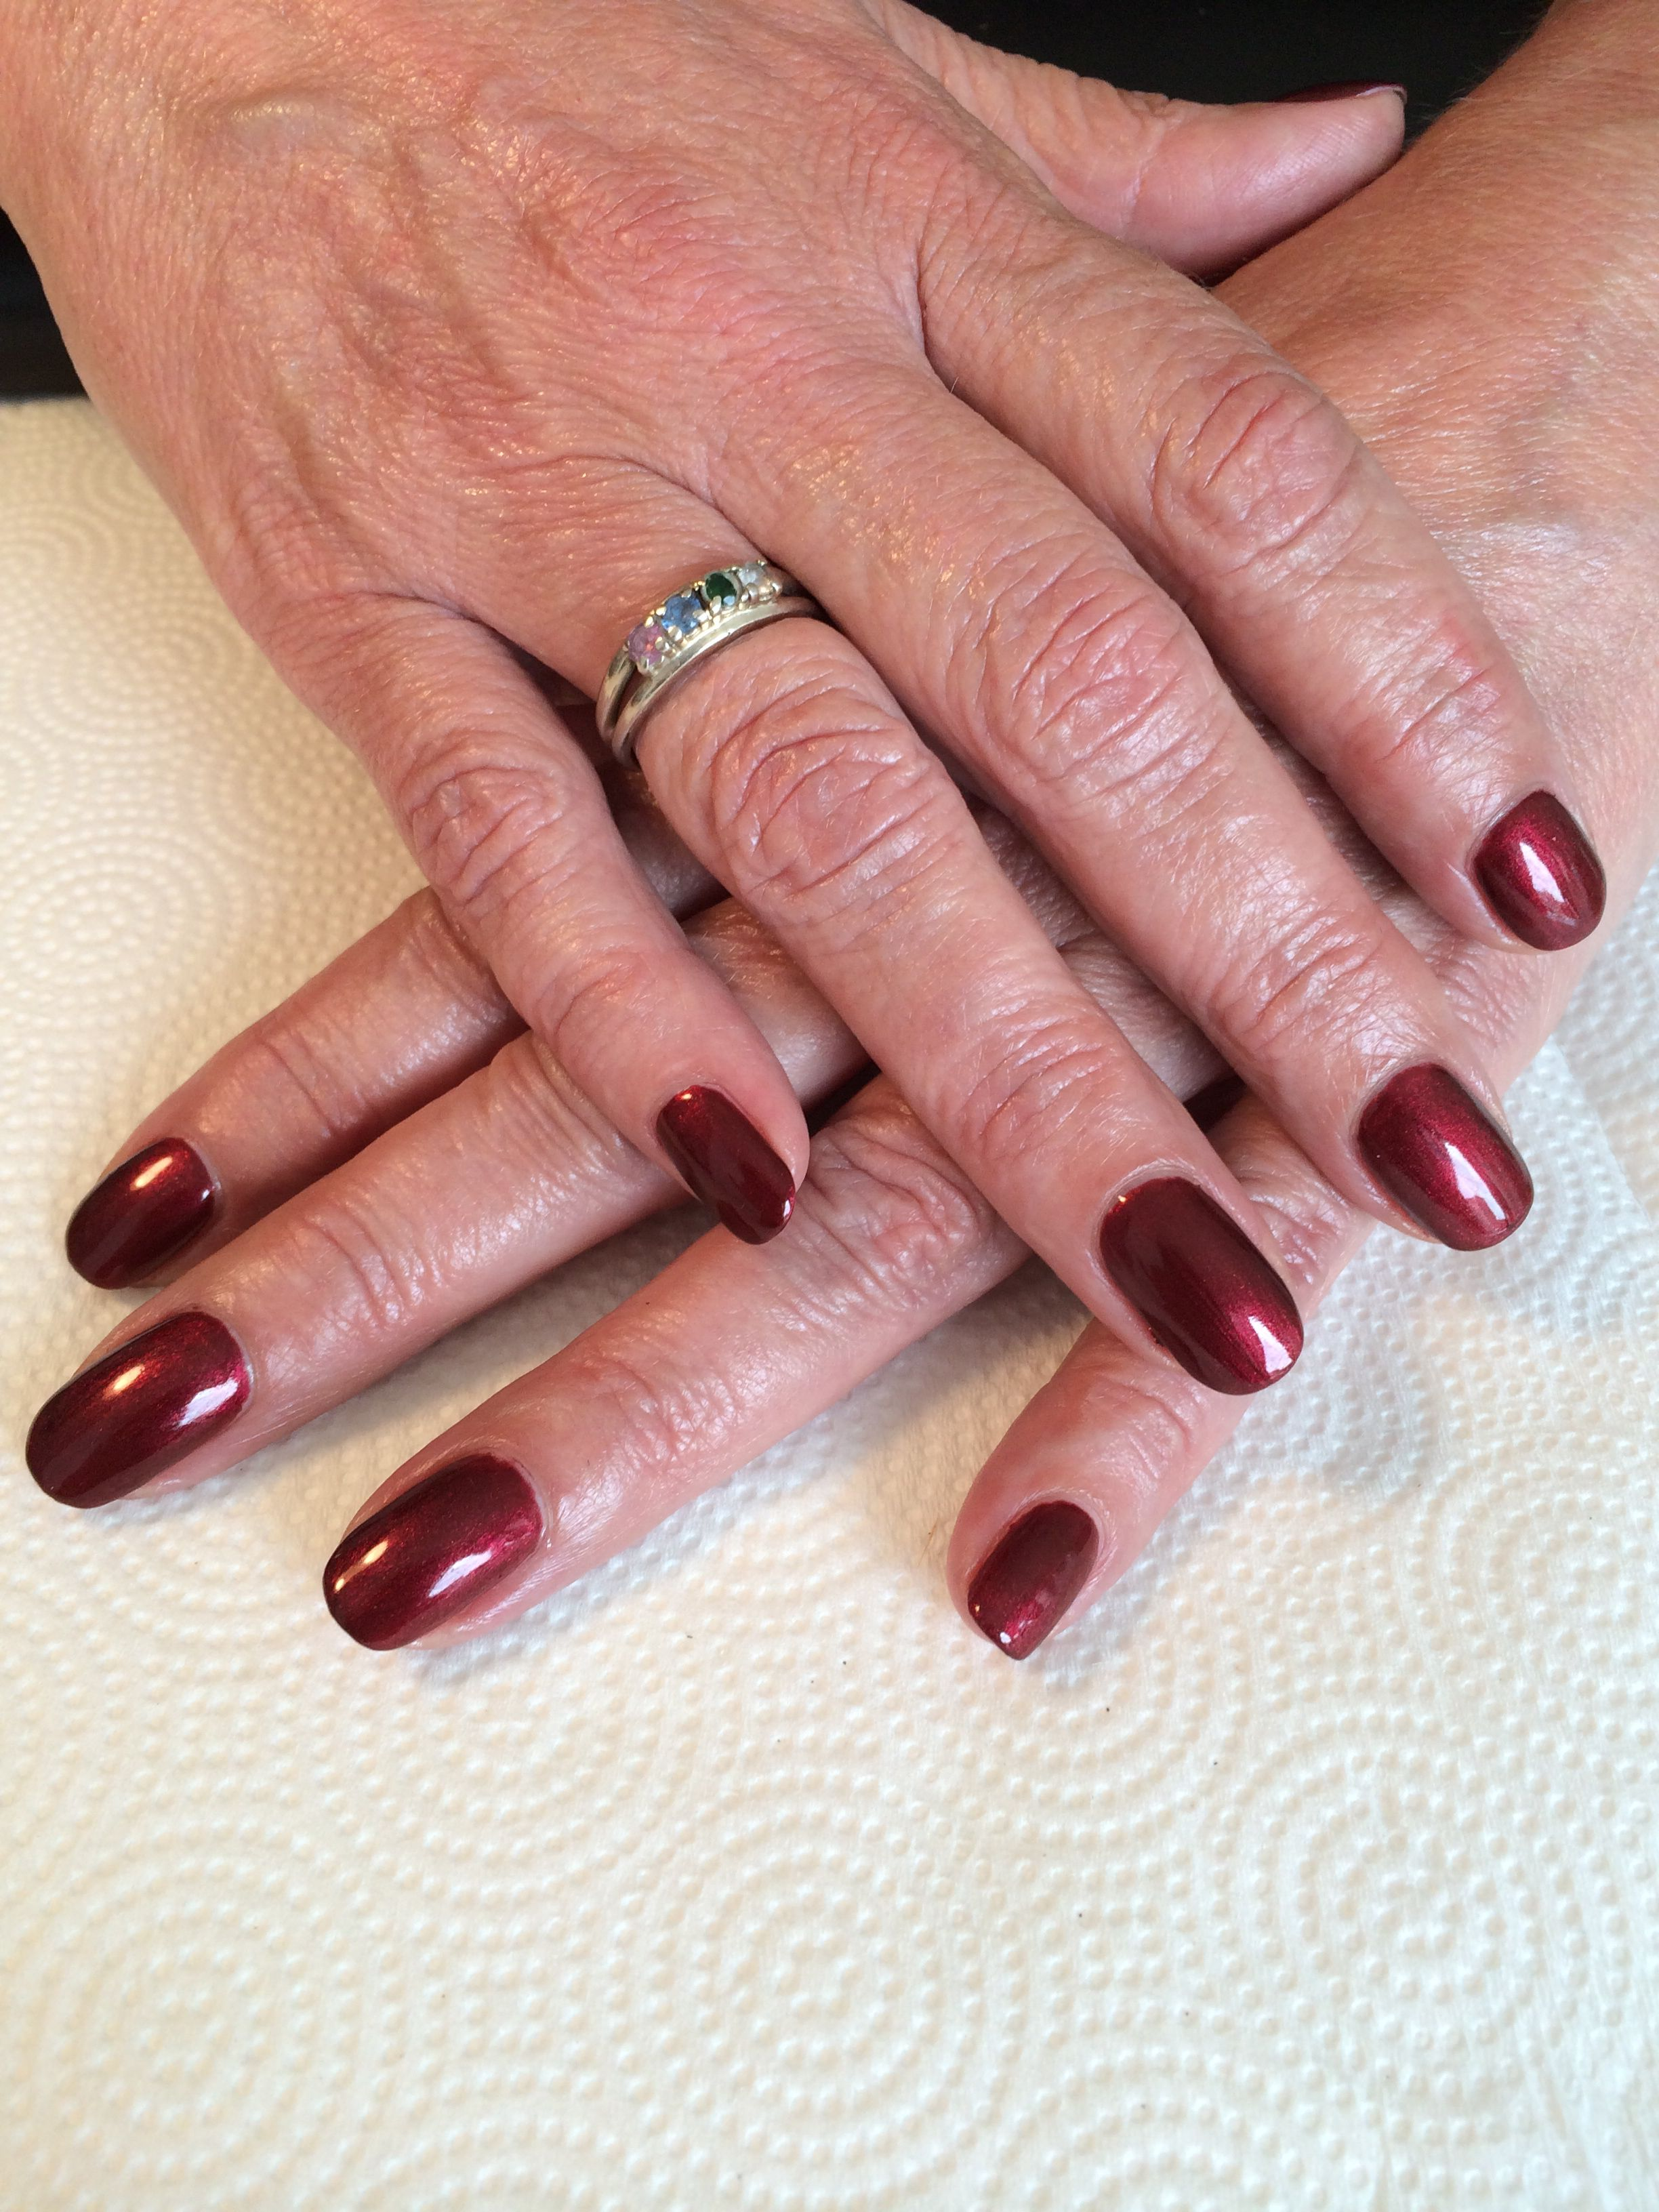 Shellac nails by Cheryl